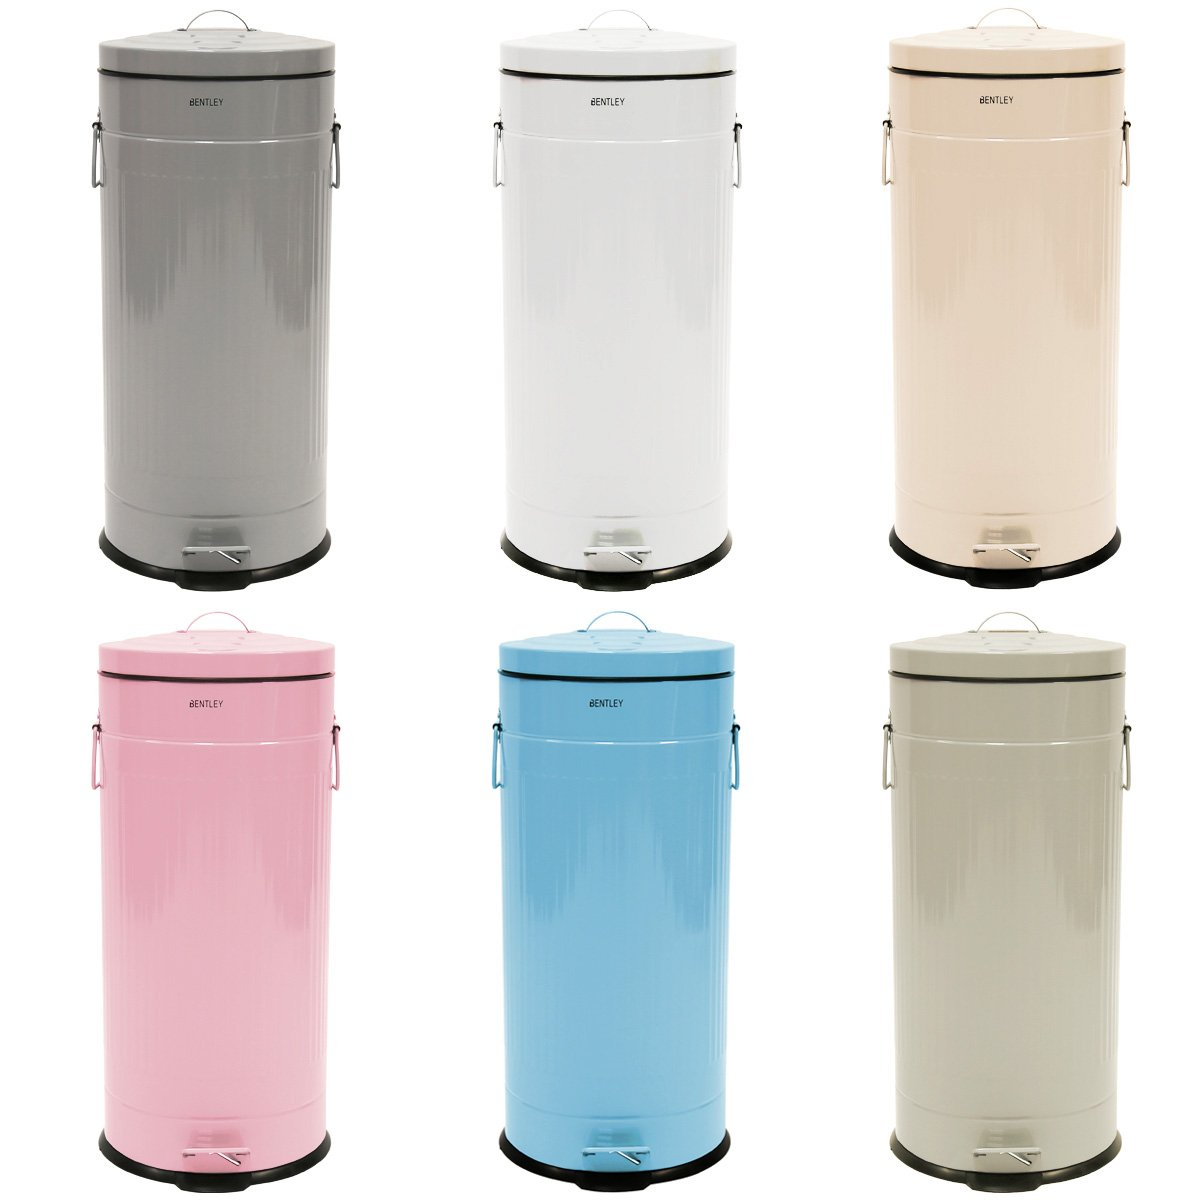 Charles Bentley Home 30L Retro Steel Waste Rubbish Kitchen Pedal Bin   Pale  Green (More Colours Available): Amazon.co.uk: Kitchen U0026 Home